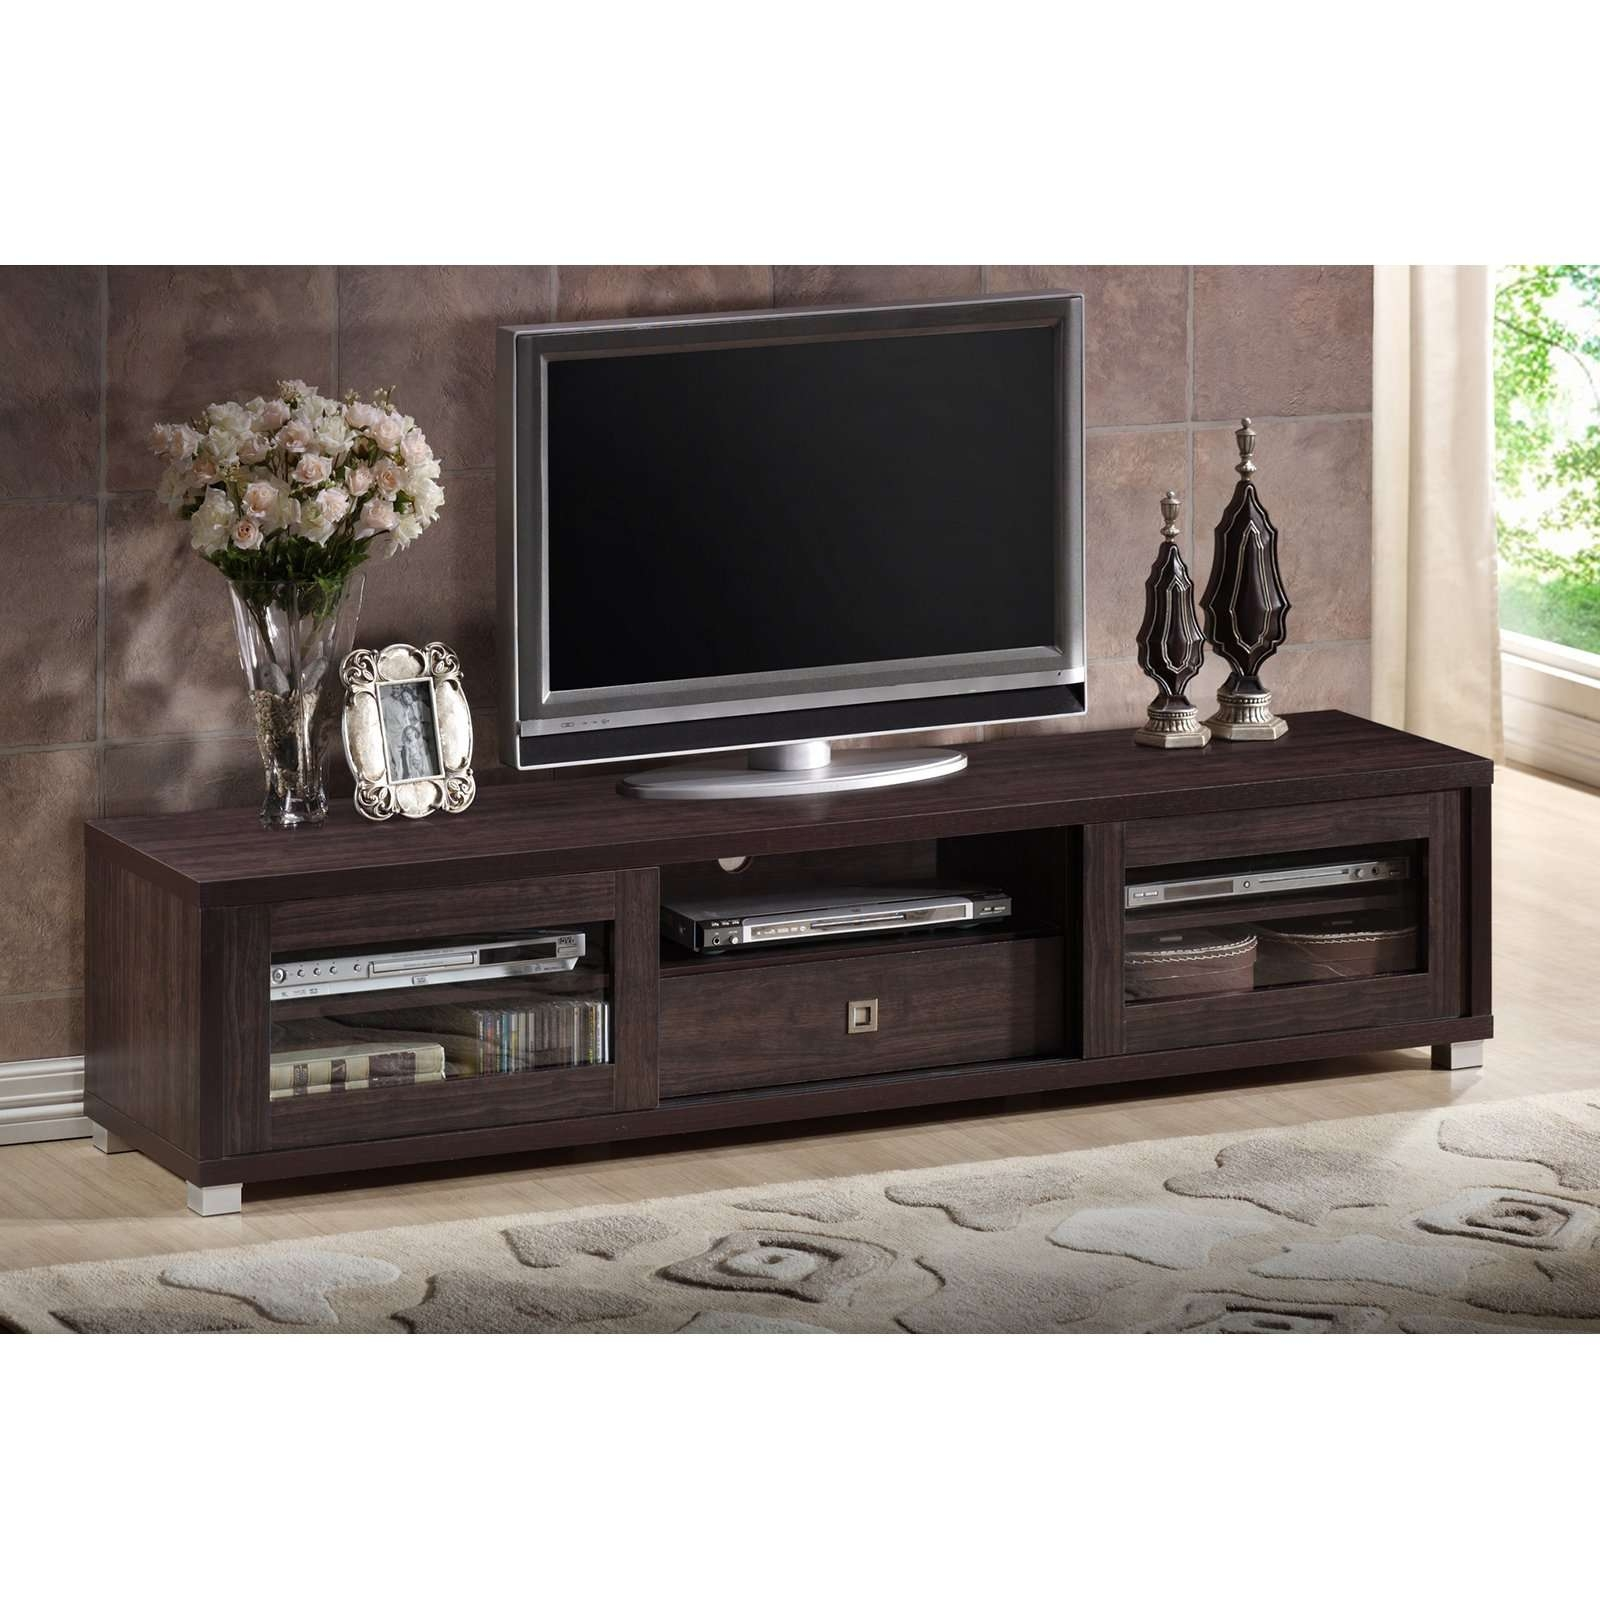 Wholesale Interiors Sculpten Dark Brown Modern Tv Stand With Glass With Regard To Brown Tv Stands (View 20 of 20)